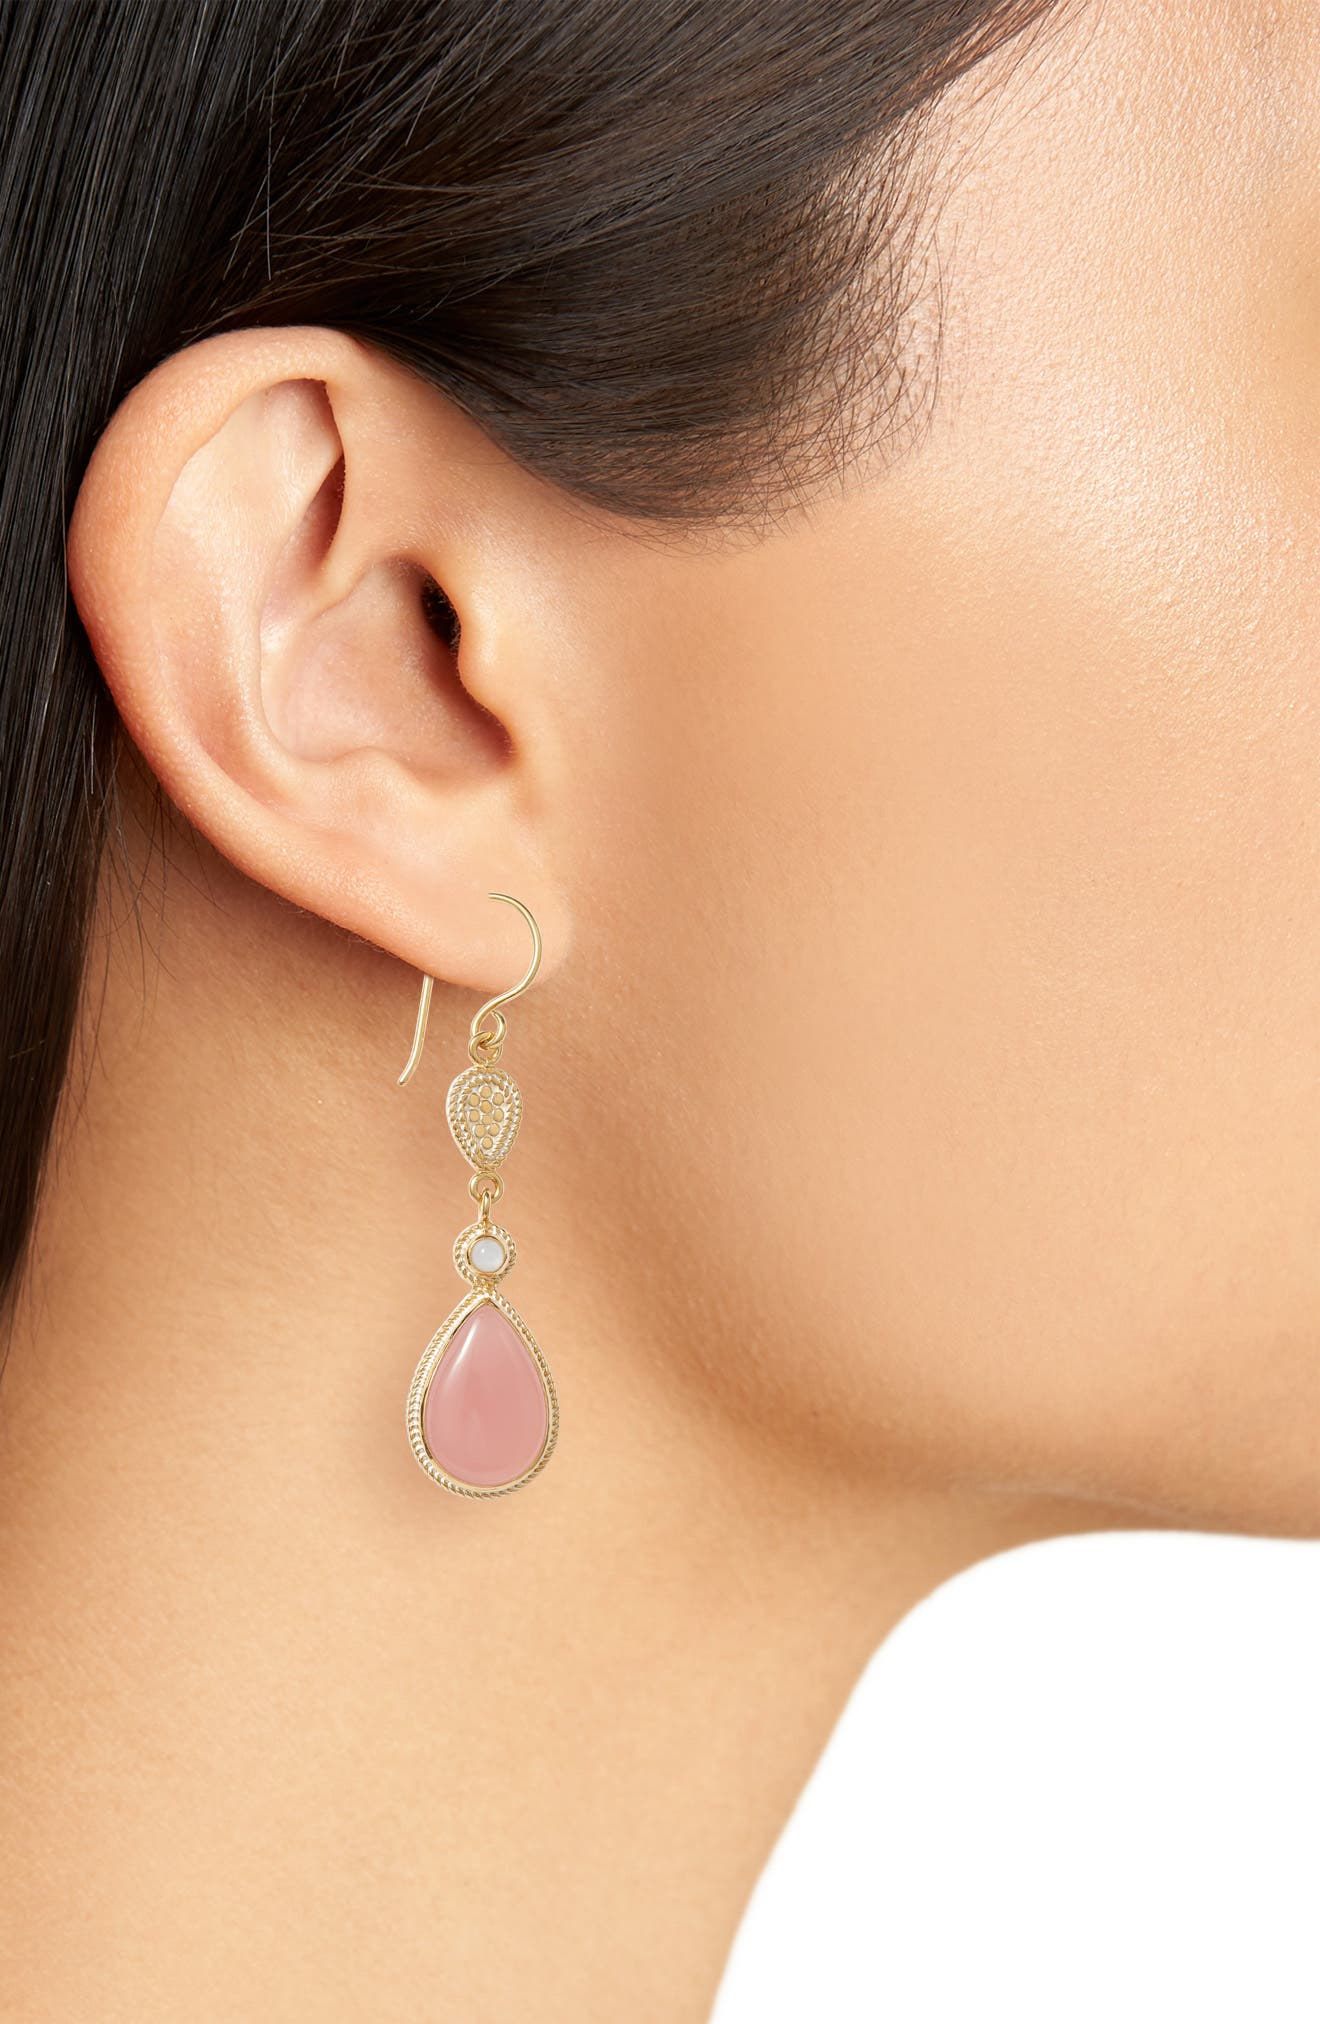 Guava Quartz & Moonstone Drop Earrings,                             Alternate thumbnail 2, color,                             950